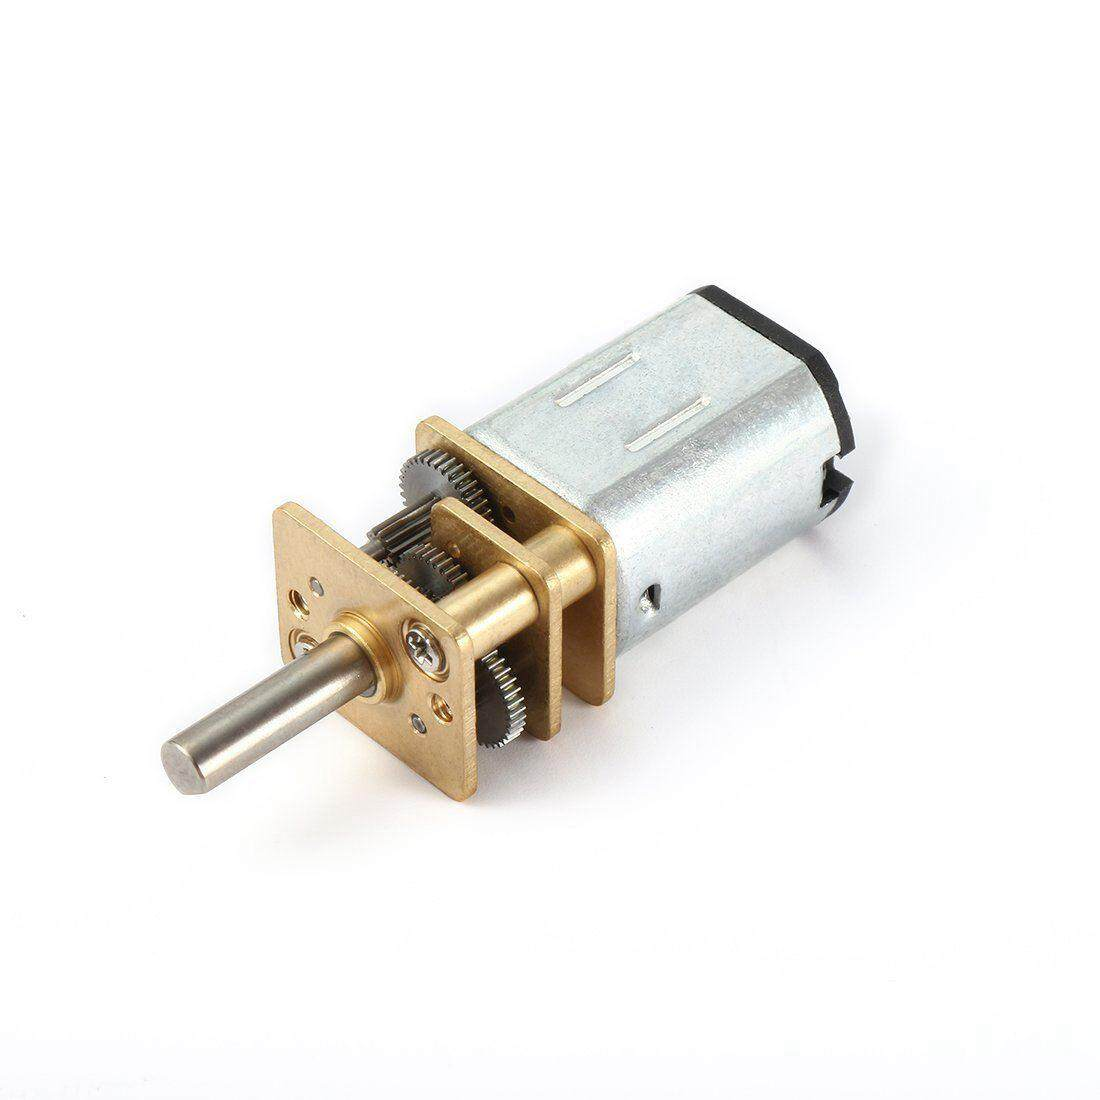 DC 6V 300RPM Micro-Speed Reduction Motor Mini Gear Box Motor with 2 Terminals for RC Car Robot Model DIY Engine Toy - intl